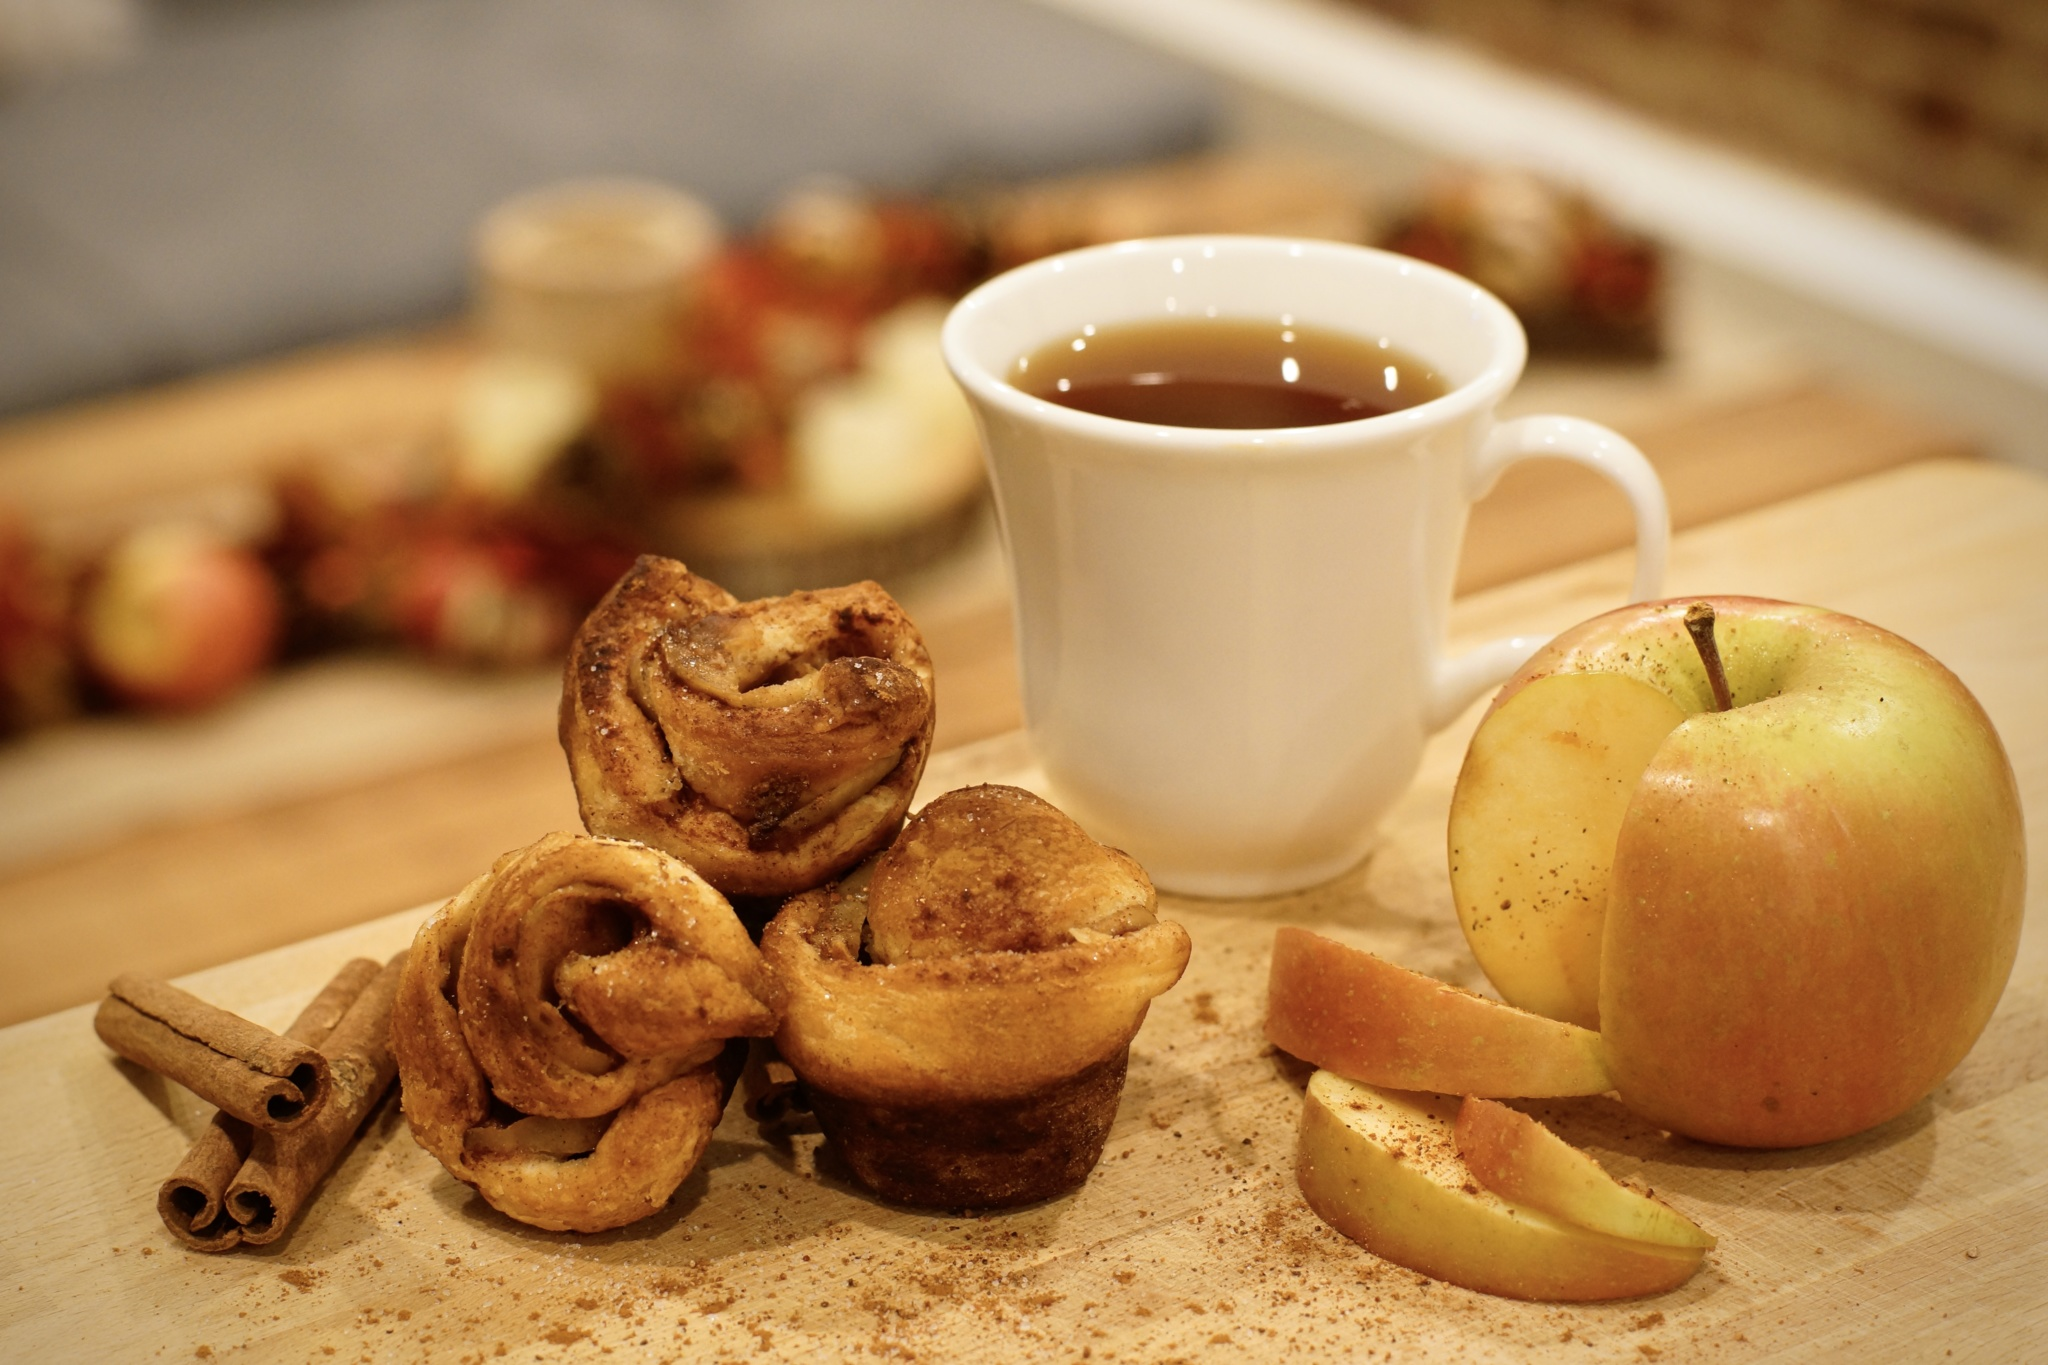 Recipe: Apple Crescent Roses - Dessert Muffin with Sugar and Cinnamon